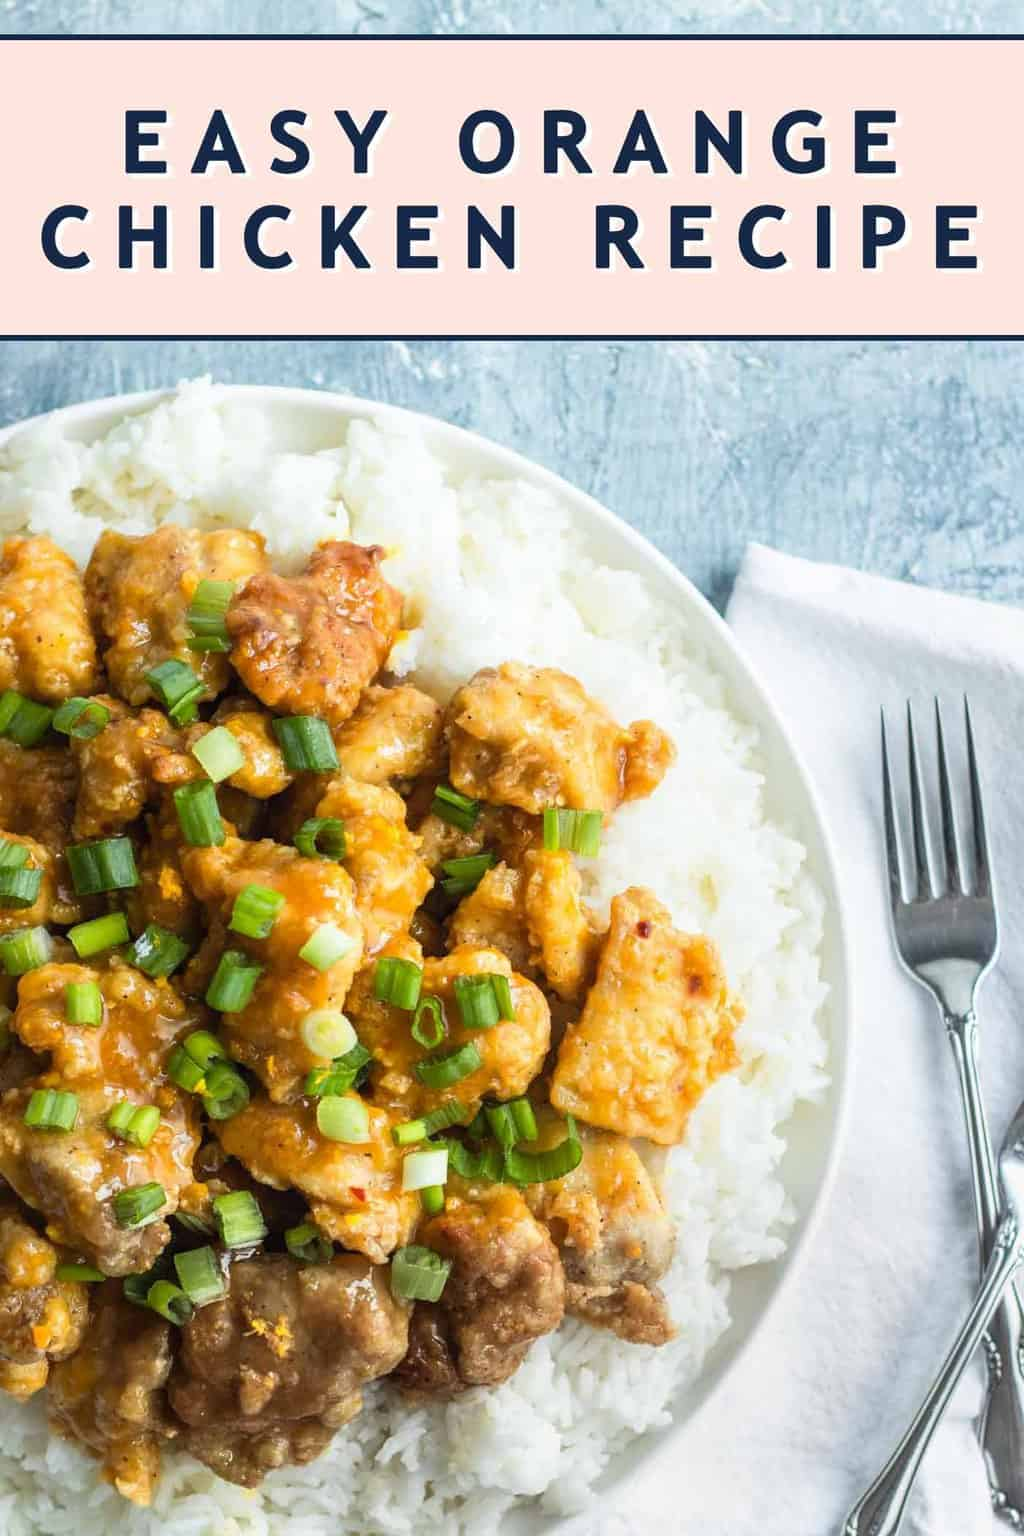 photo of the recipe card for the easy orange chicken by top Houston lifestyle blogger Ashley Rose of Sugar & Cloth